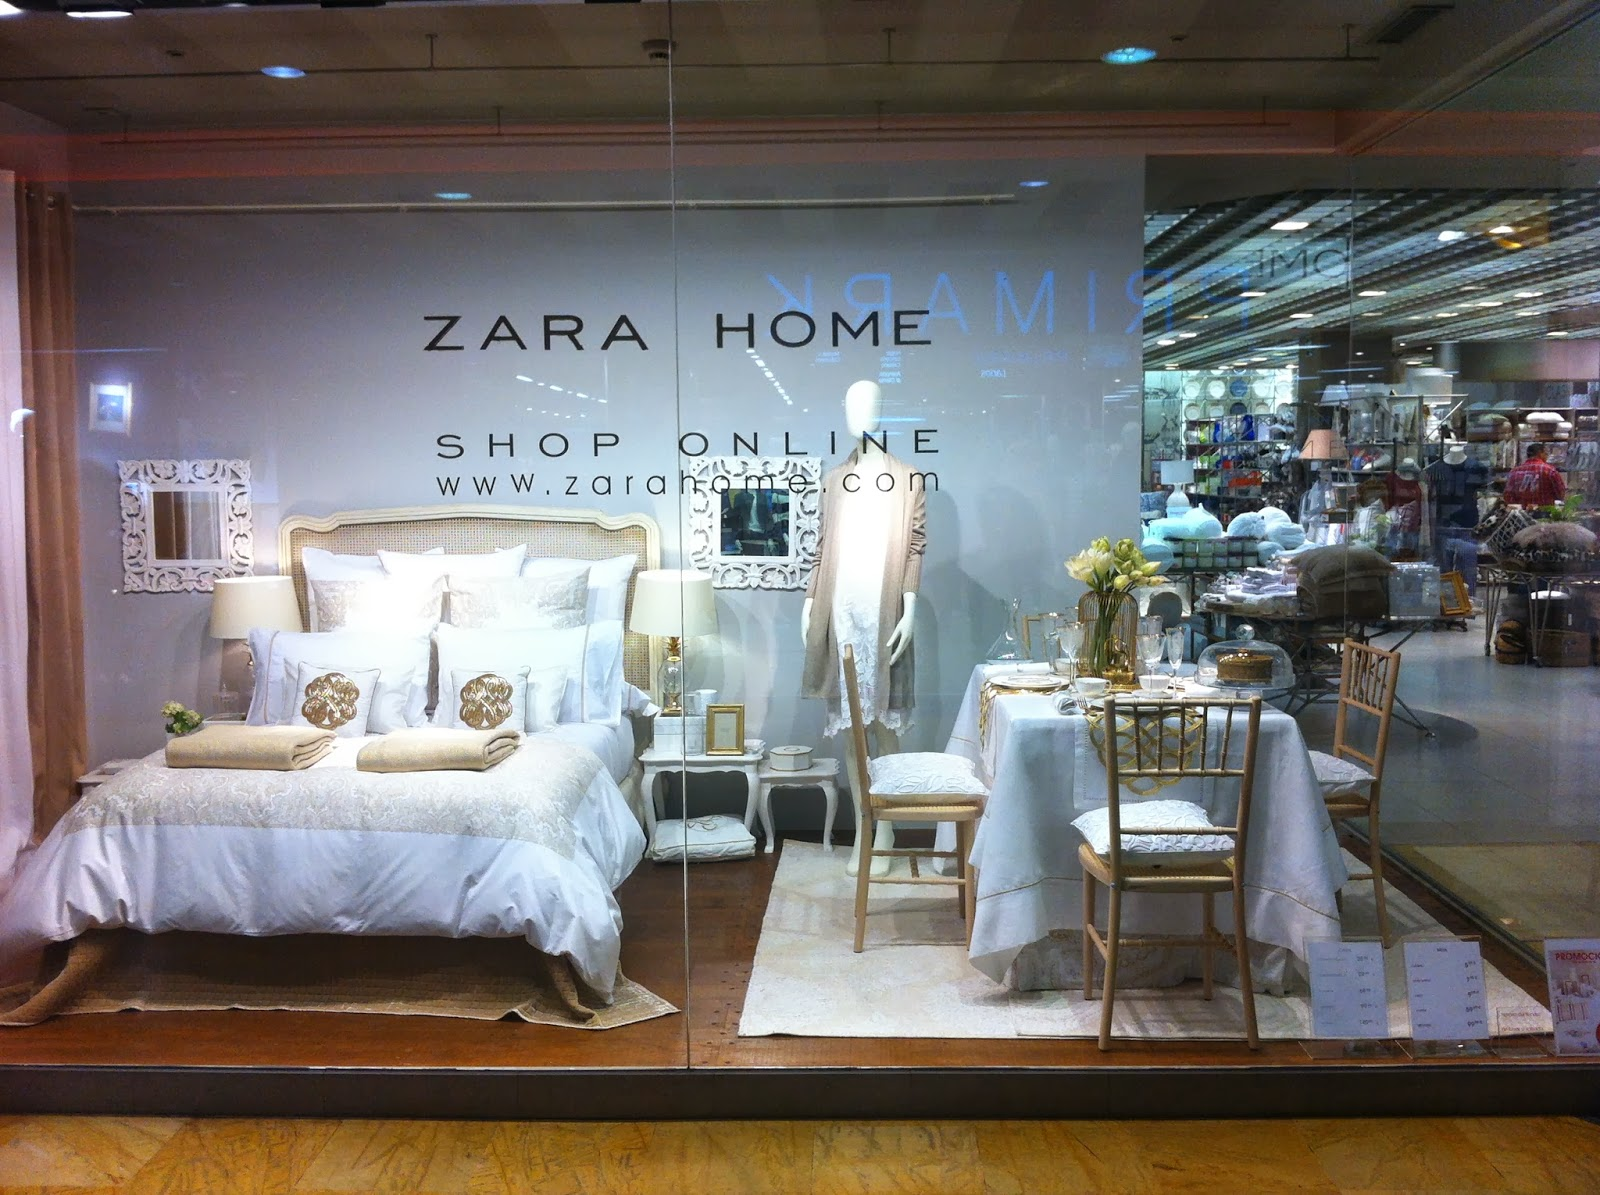 Animaci N Y Marketing En El Punto De Venta Zara Home La